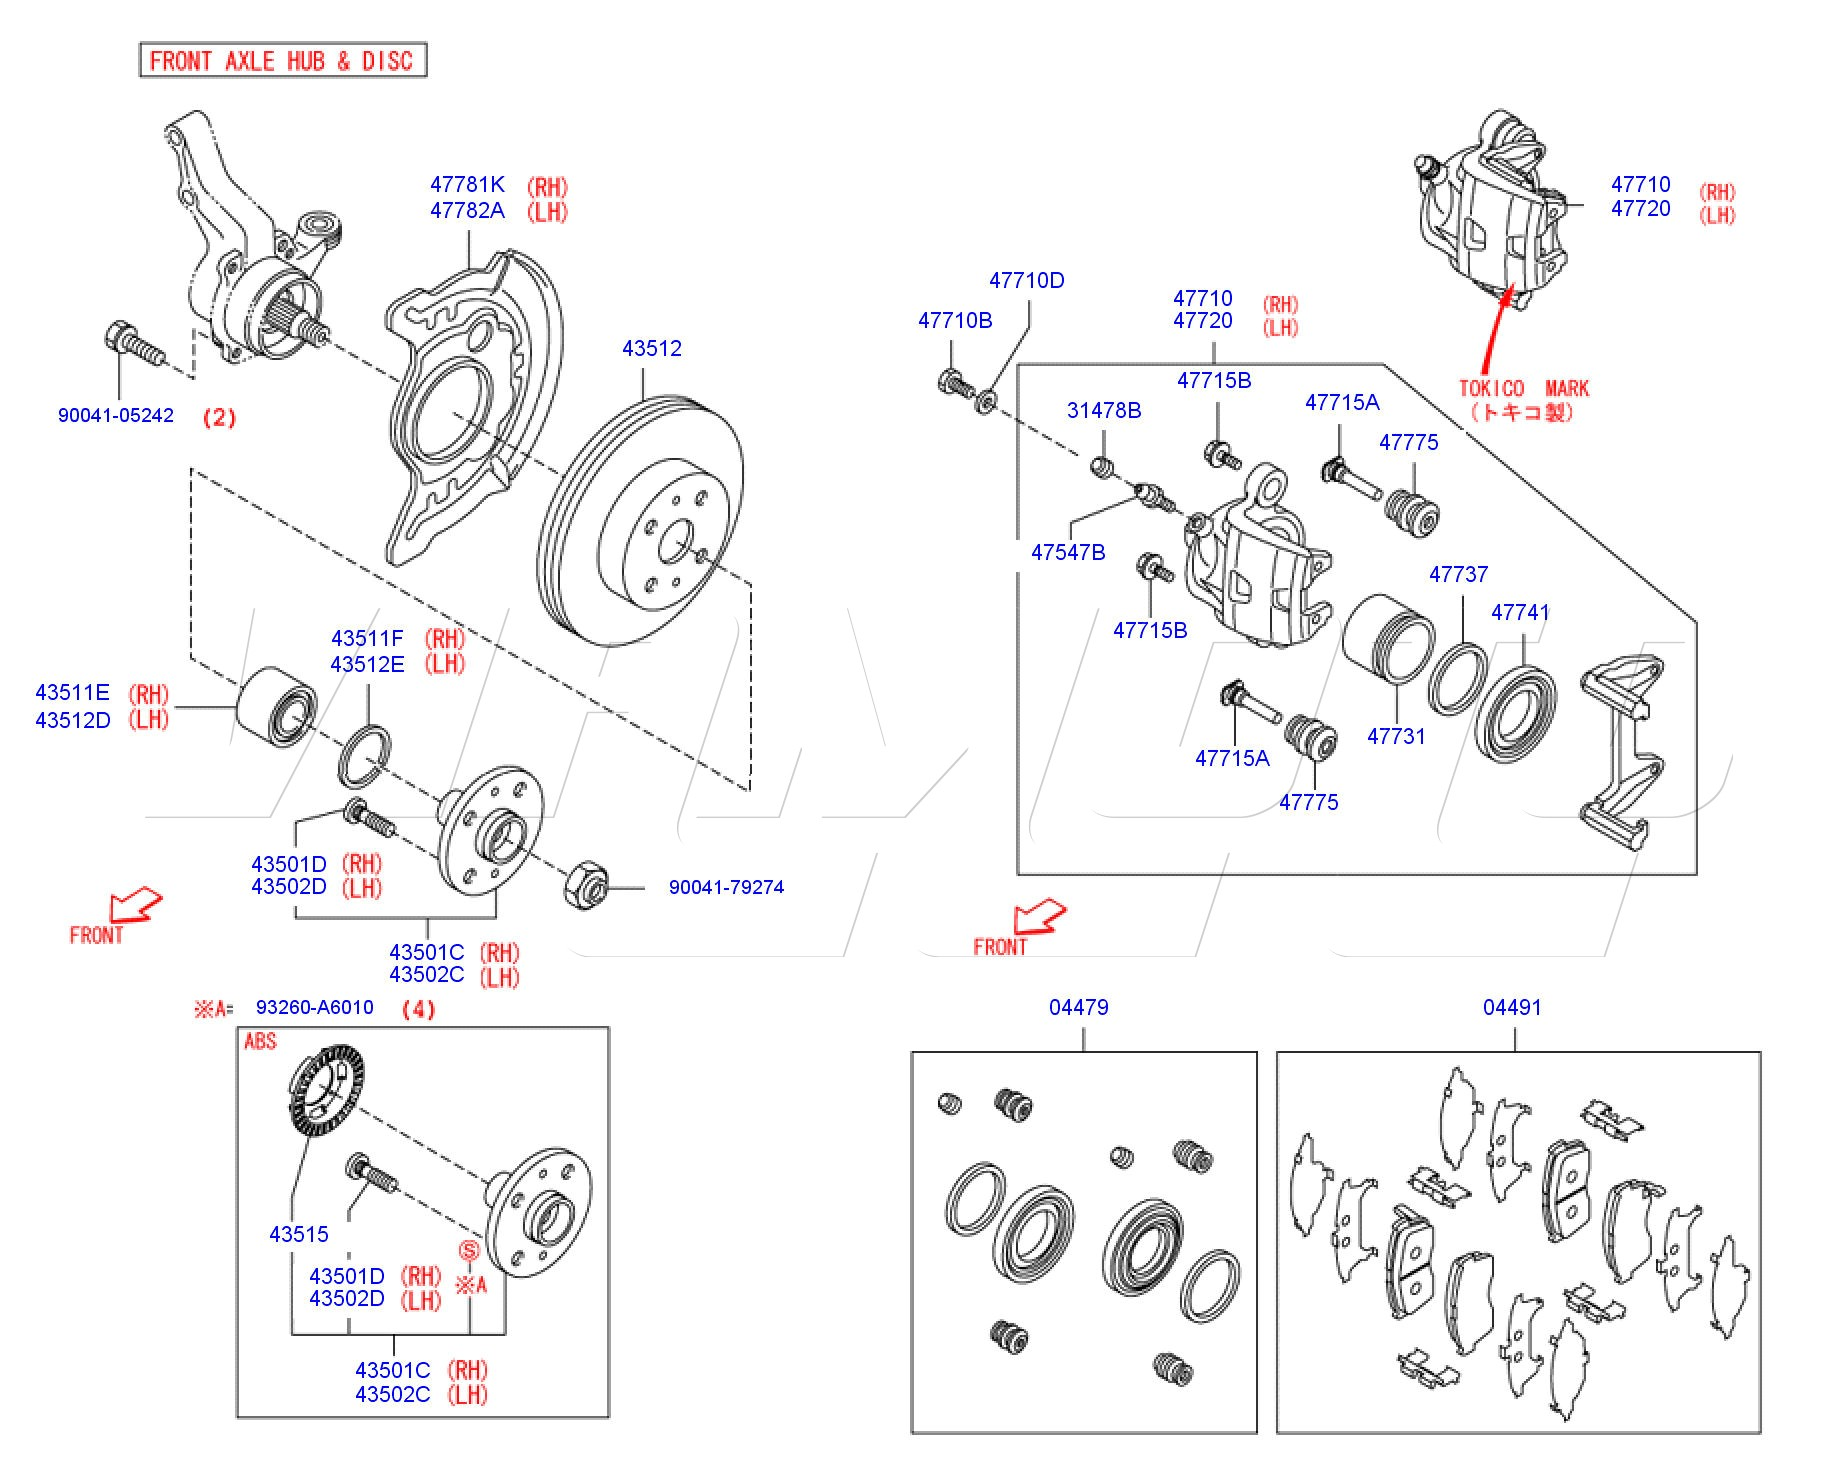 Wiring Diagram For Daihatsu Charade Com